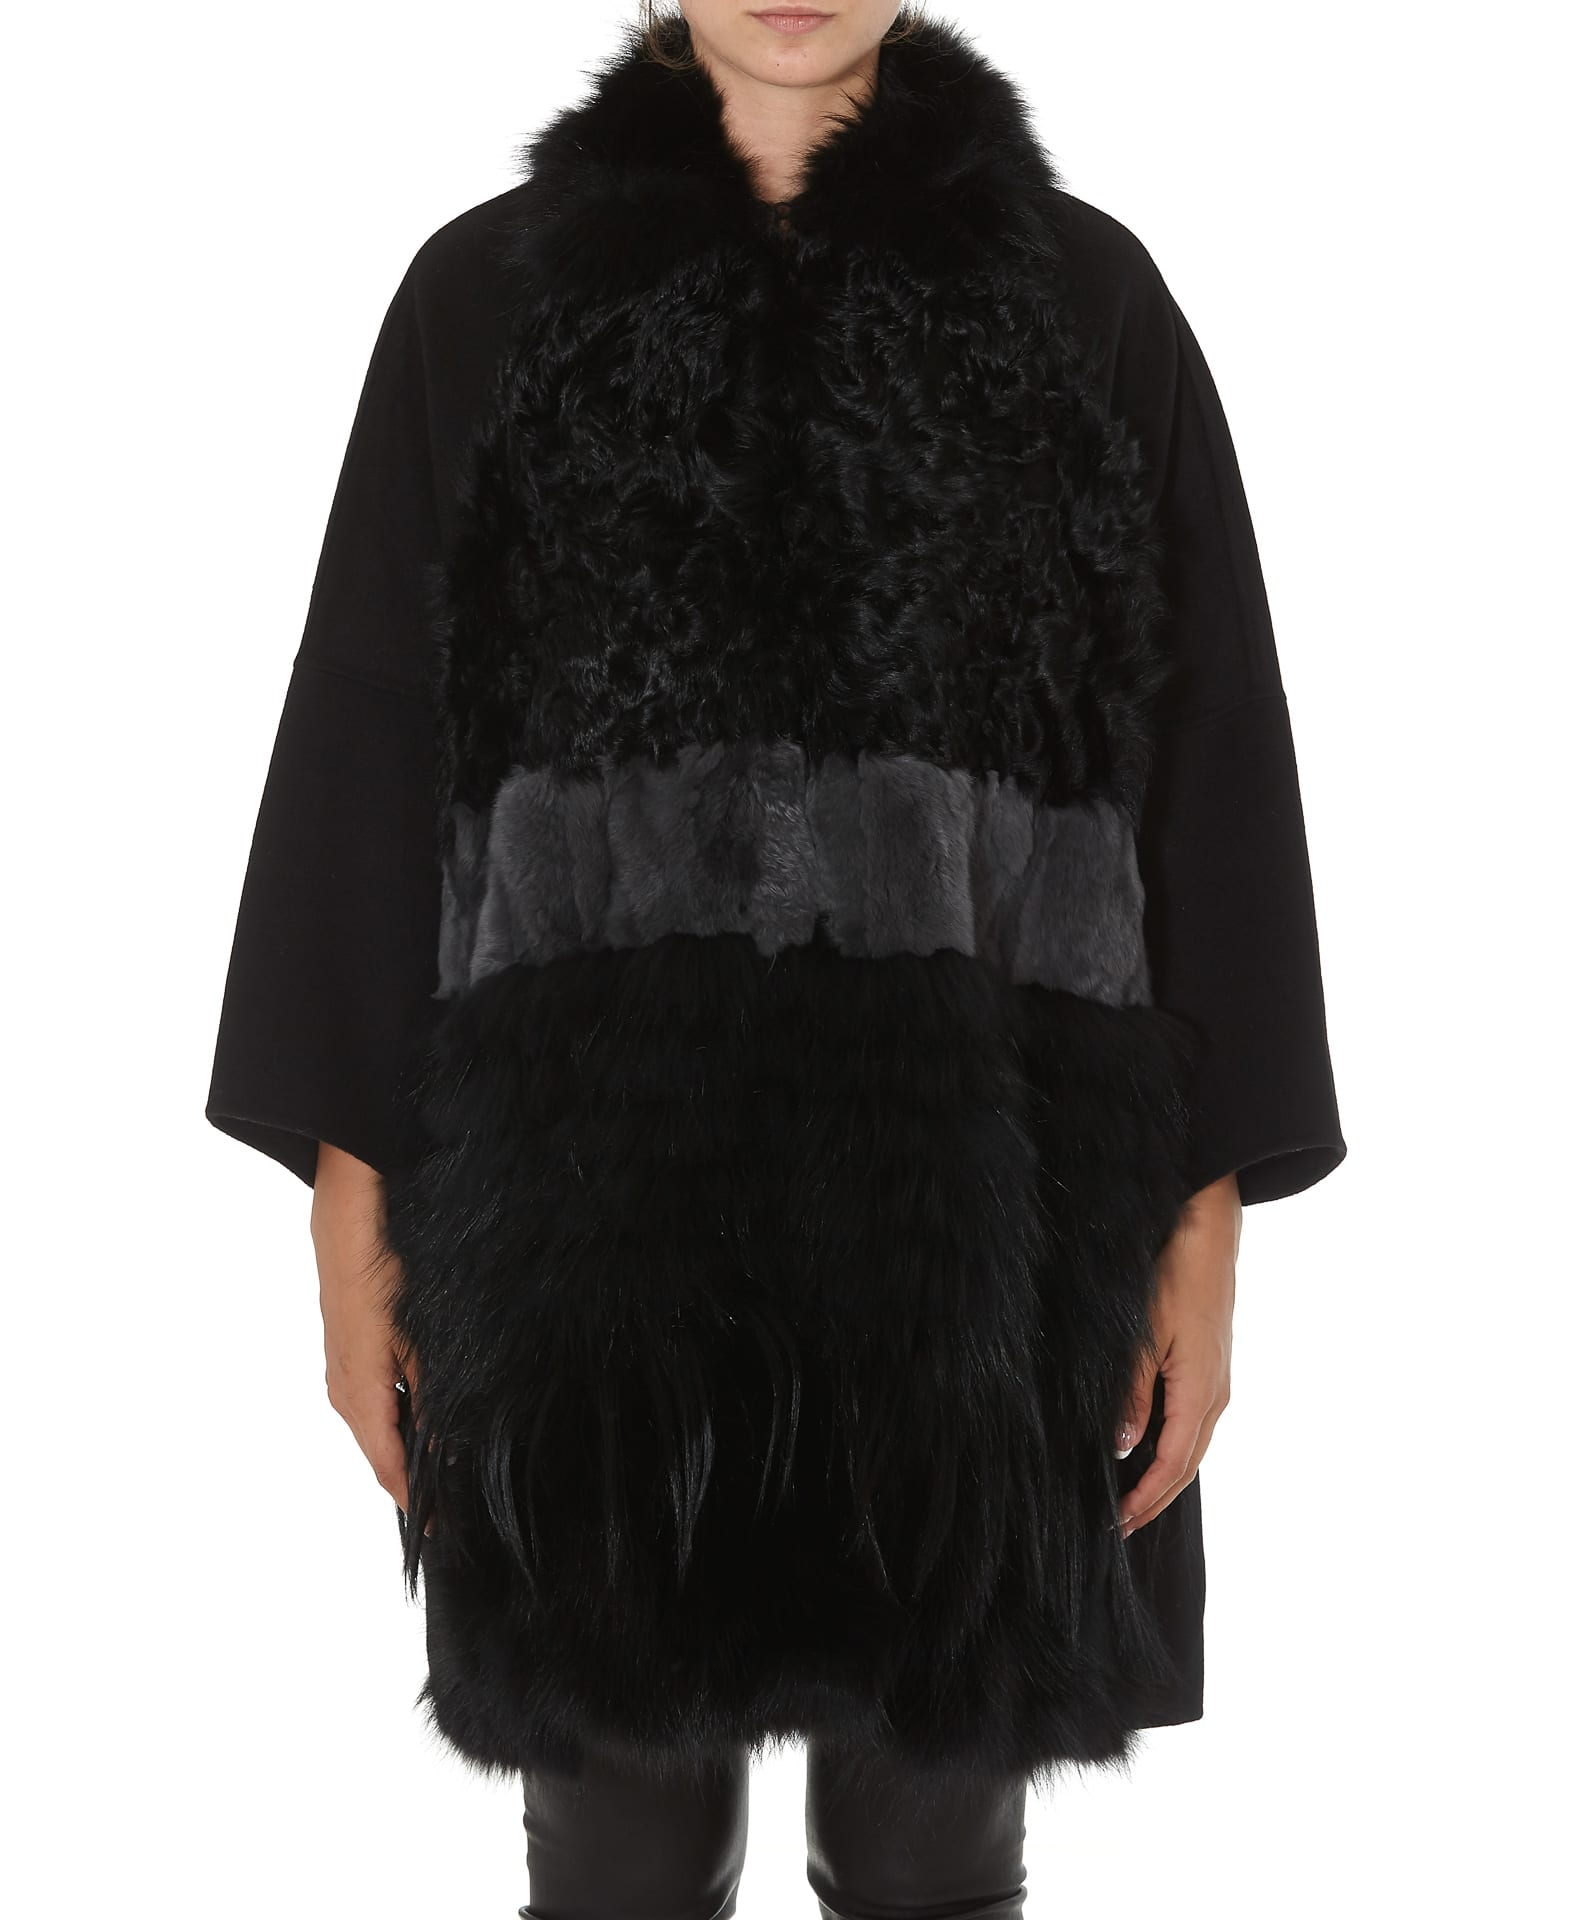 Caban Romantic Coat With Fur Details